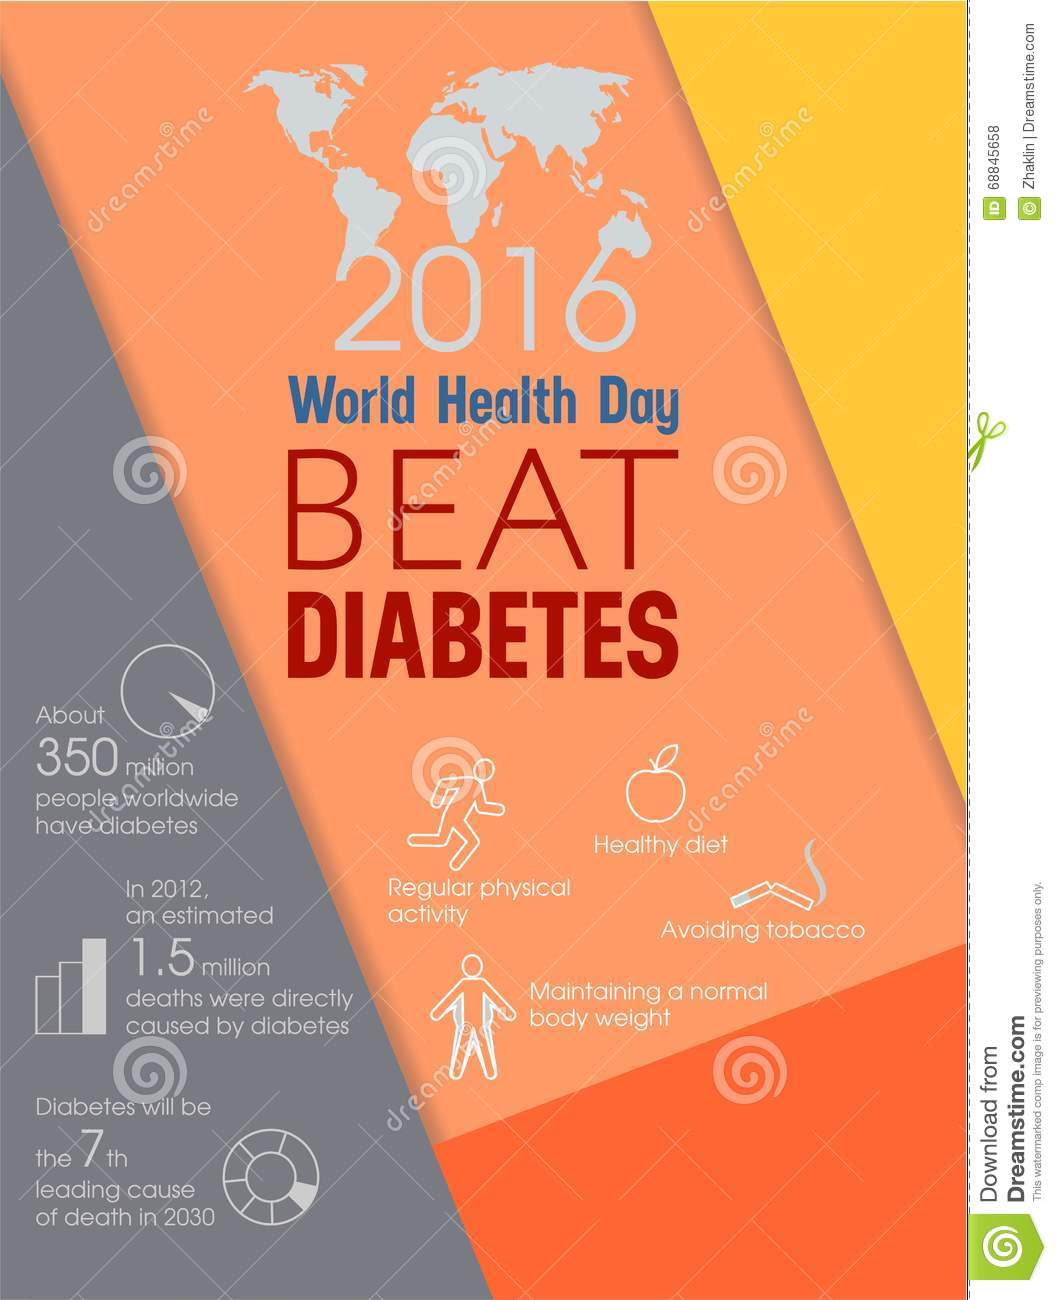 world health day beat diabetes stock vector   image 68845658